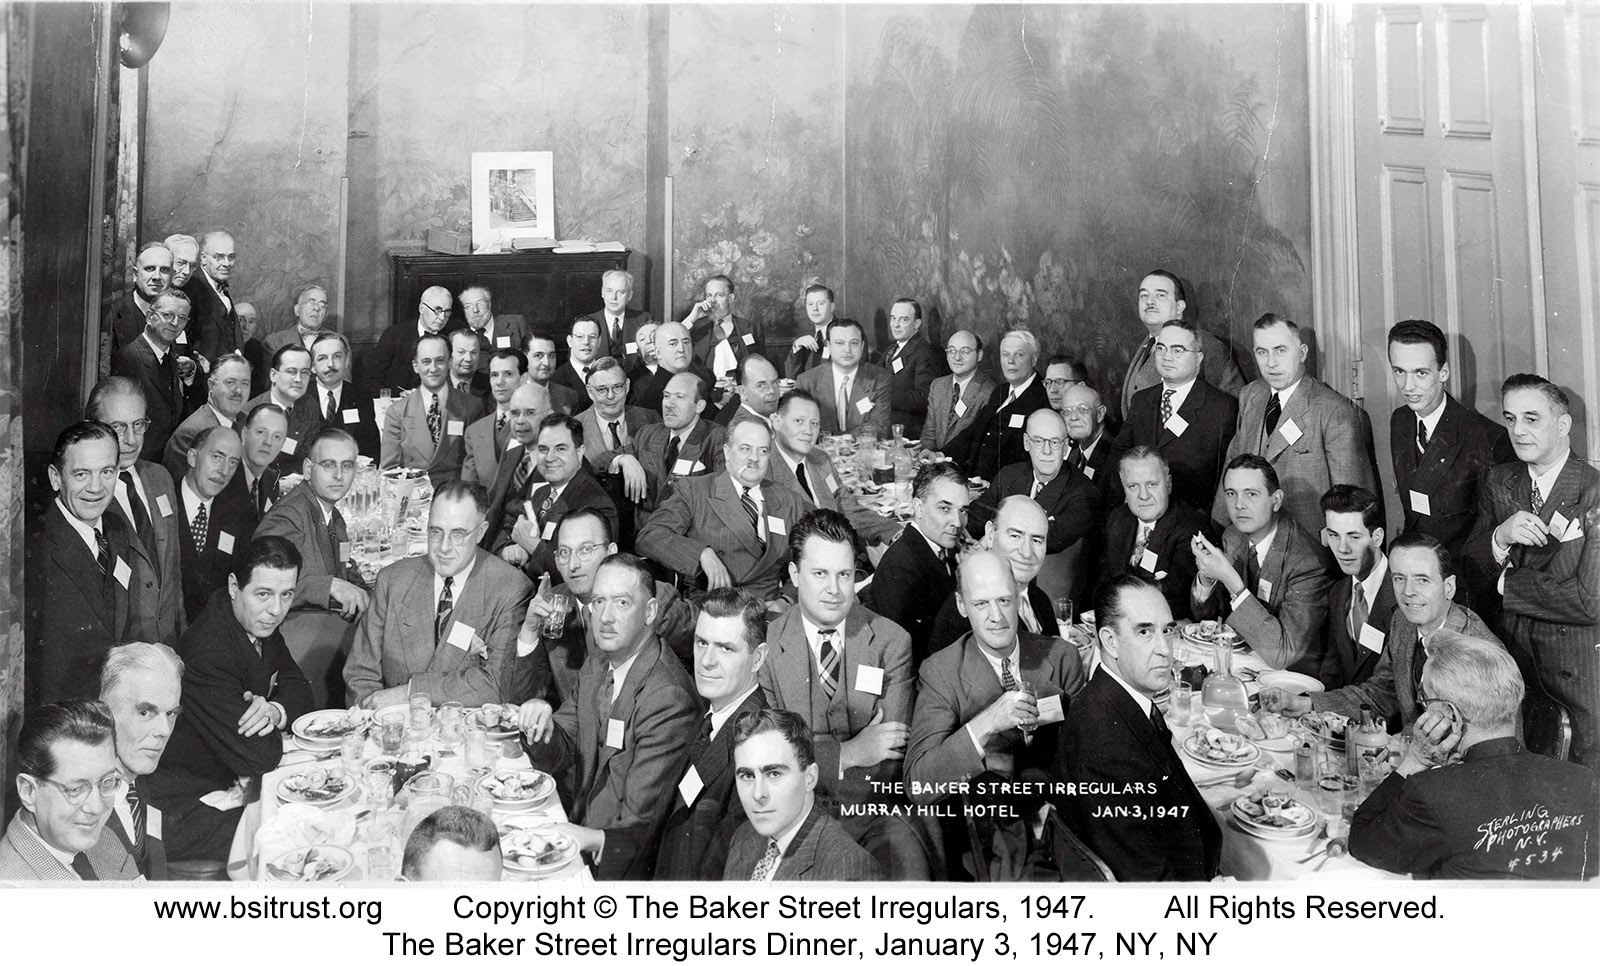 The 1947 BSI Dinner group photo